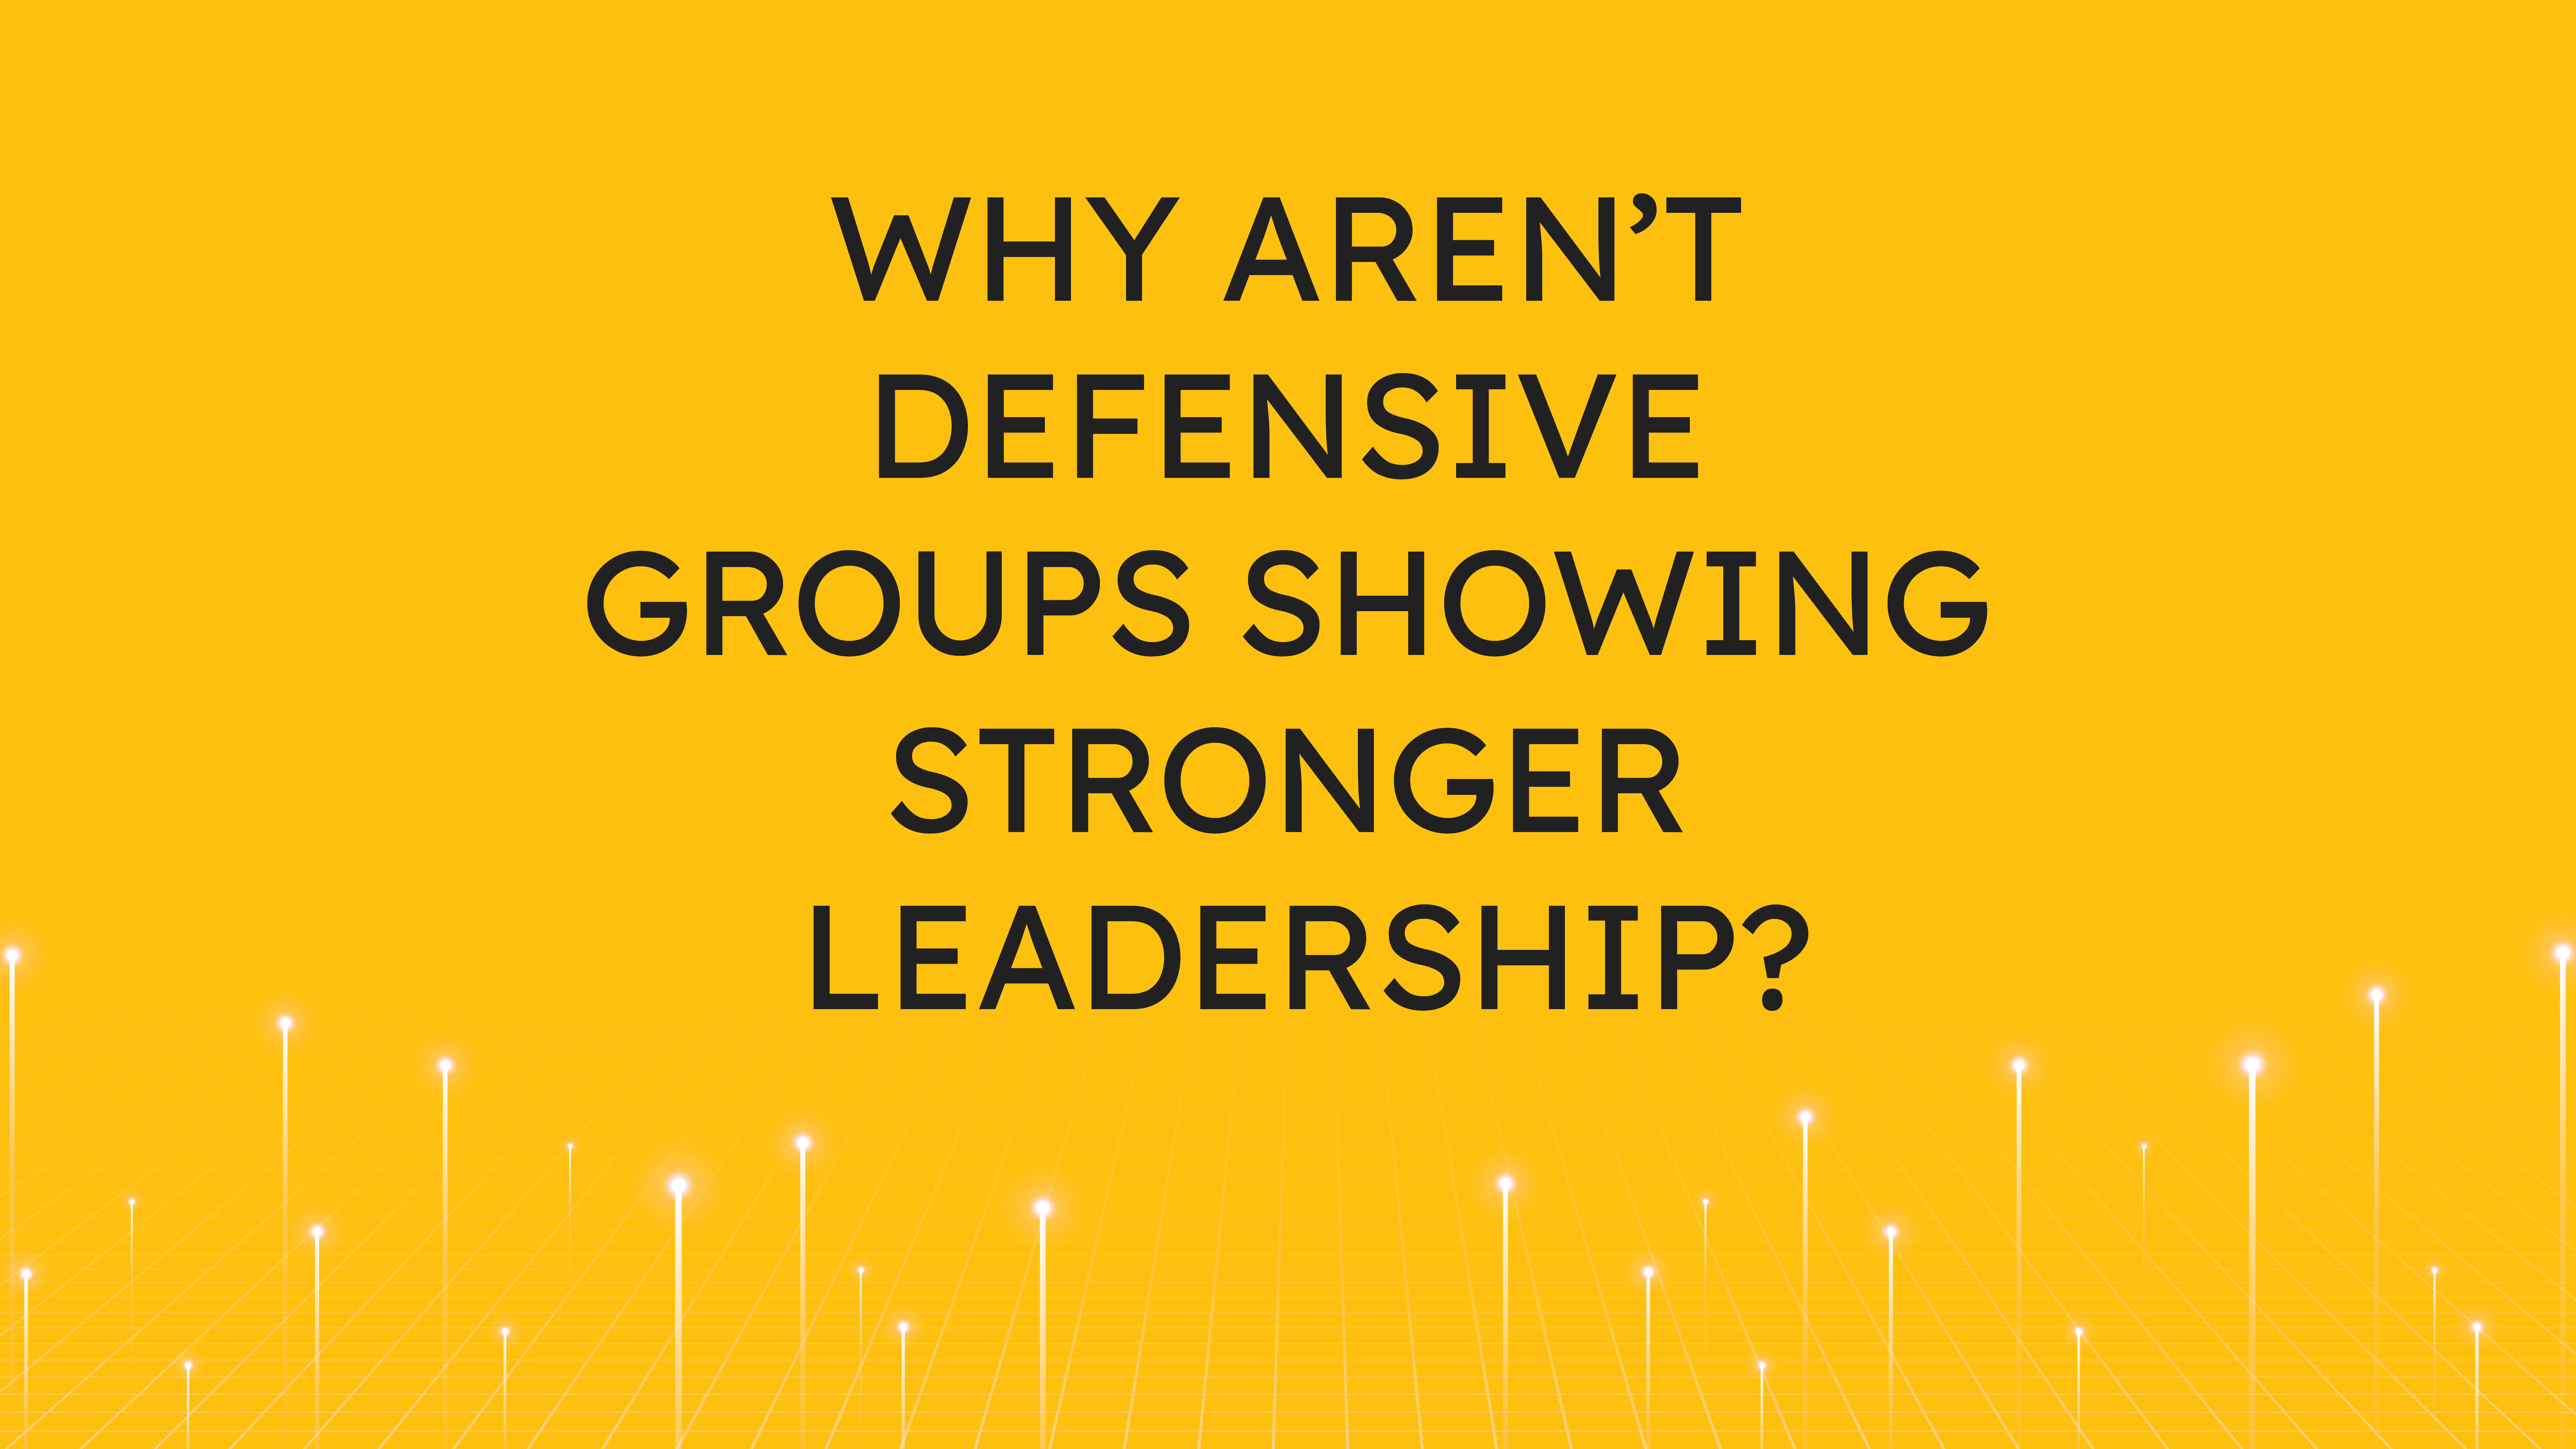 Why Aren't Defensive Groups  Showing Stronger Leadership?